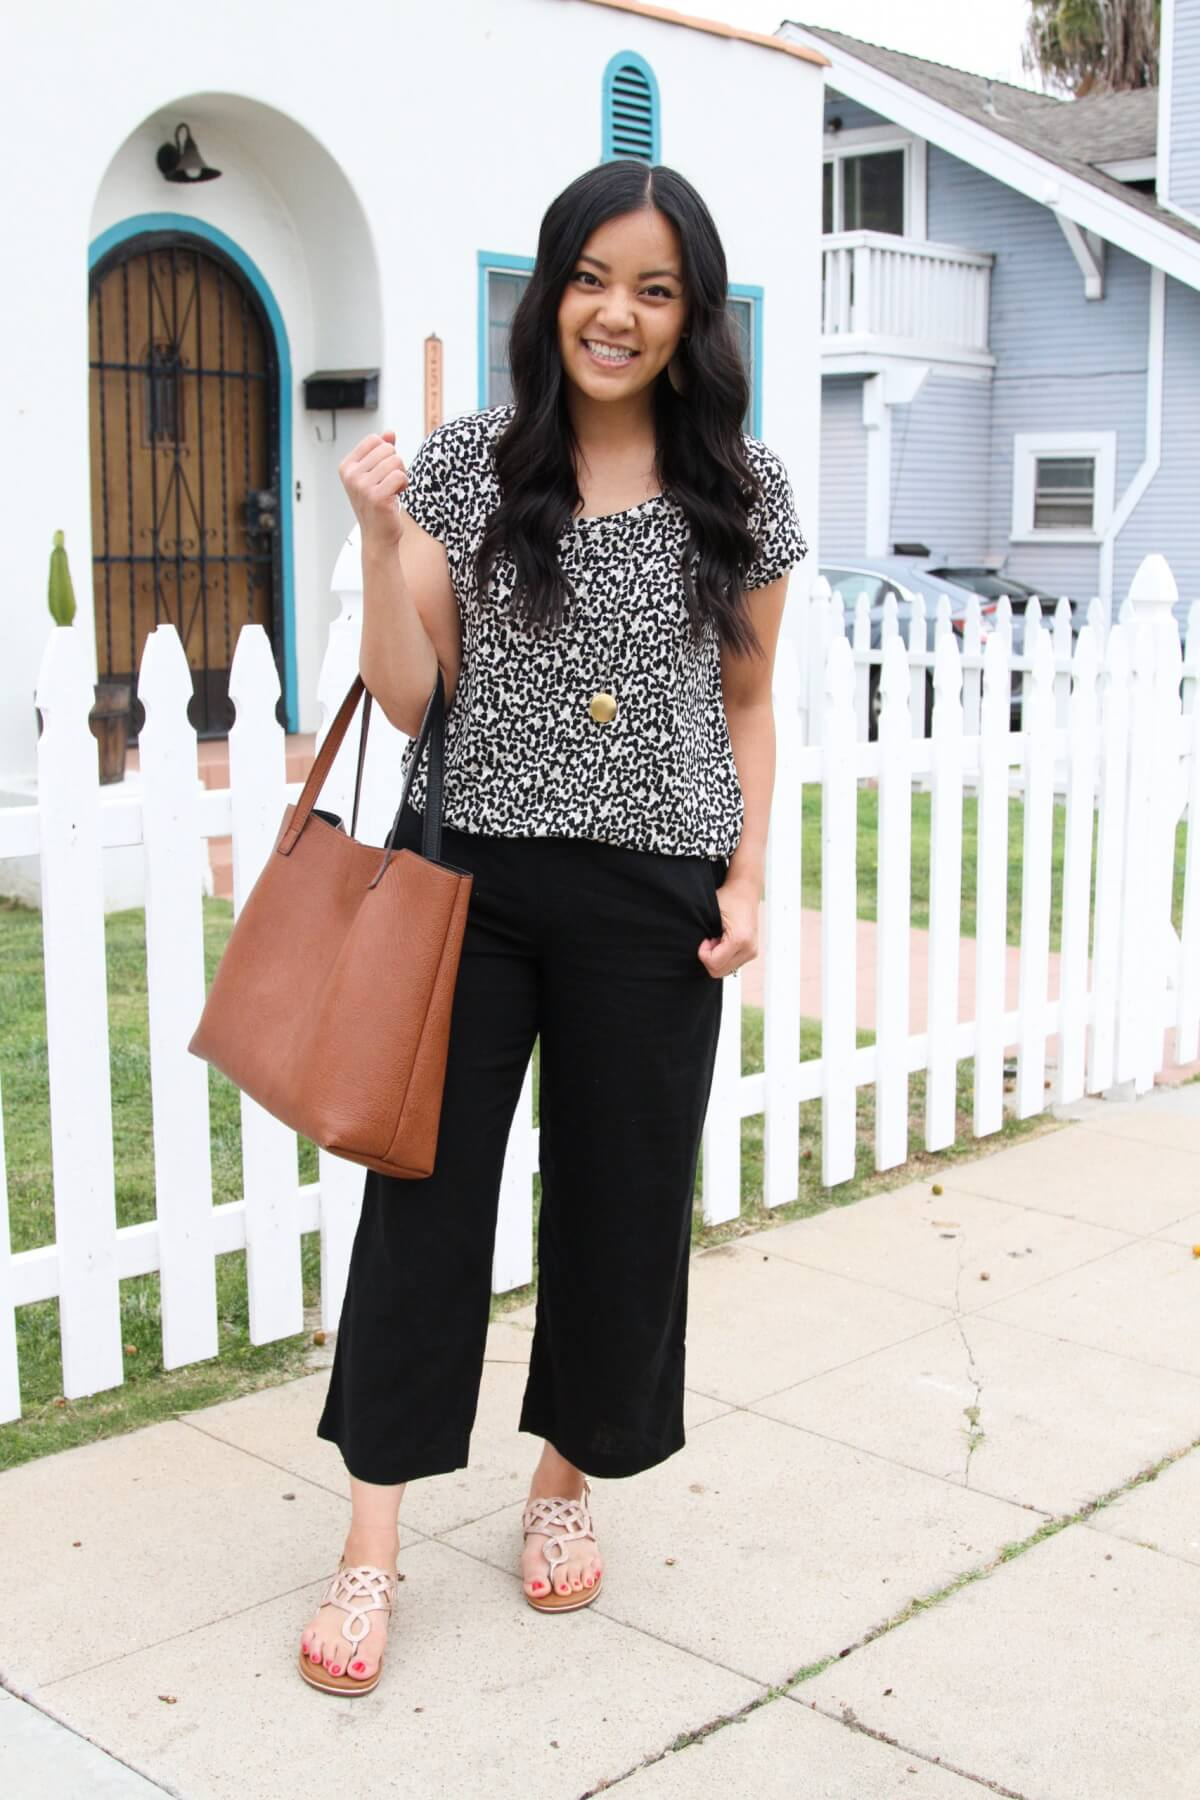 Summer Pants Elevated Outfit: black white beige spotted tee + black wide leg pants + pendant necklace + metallic sandals + tan tote